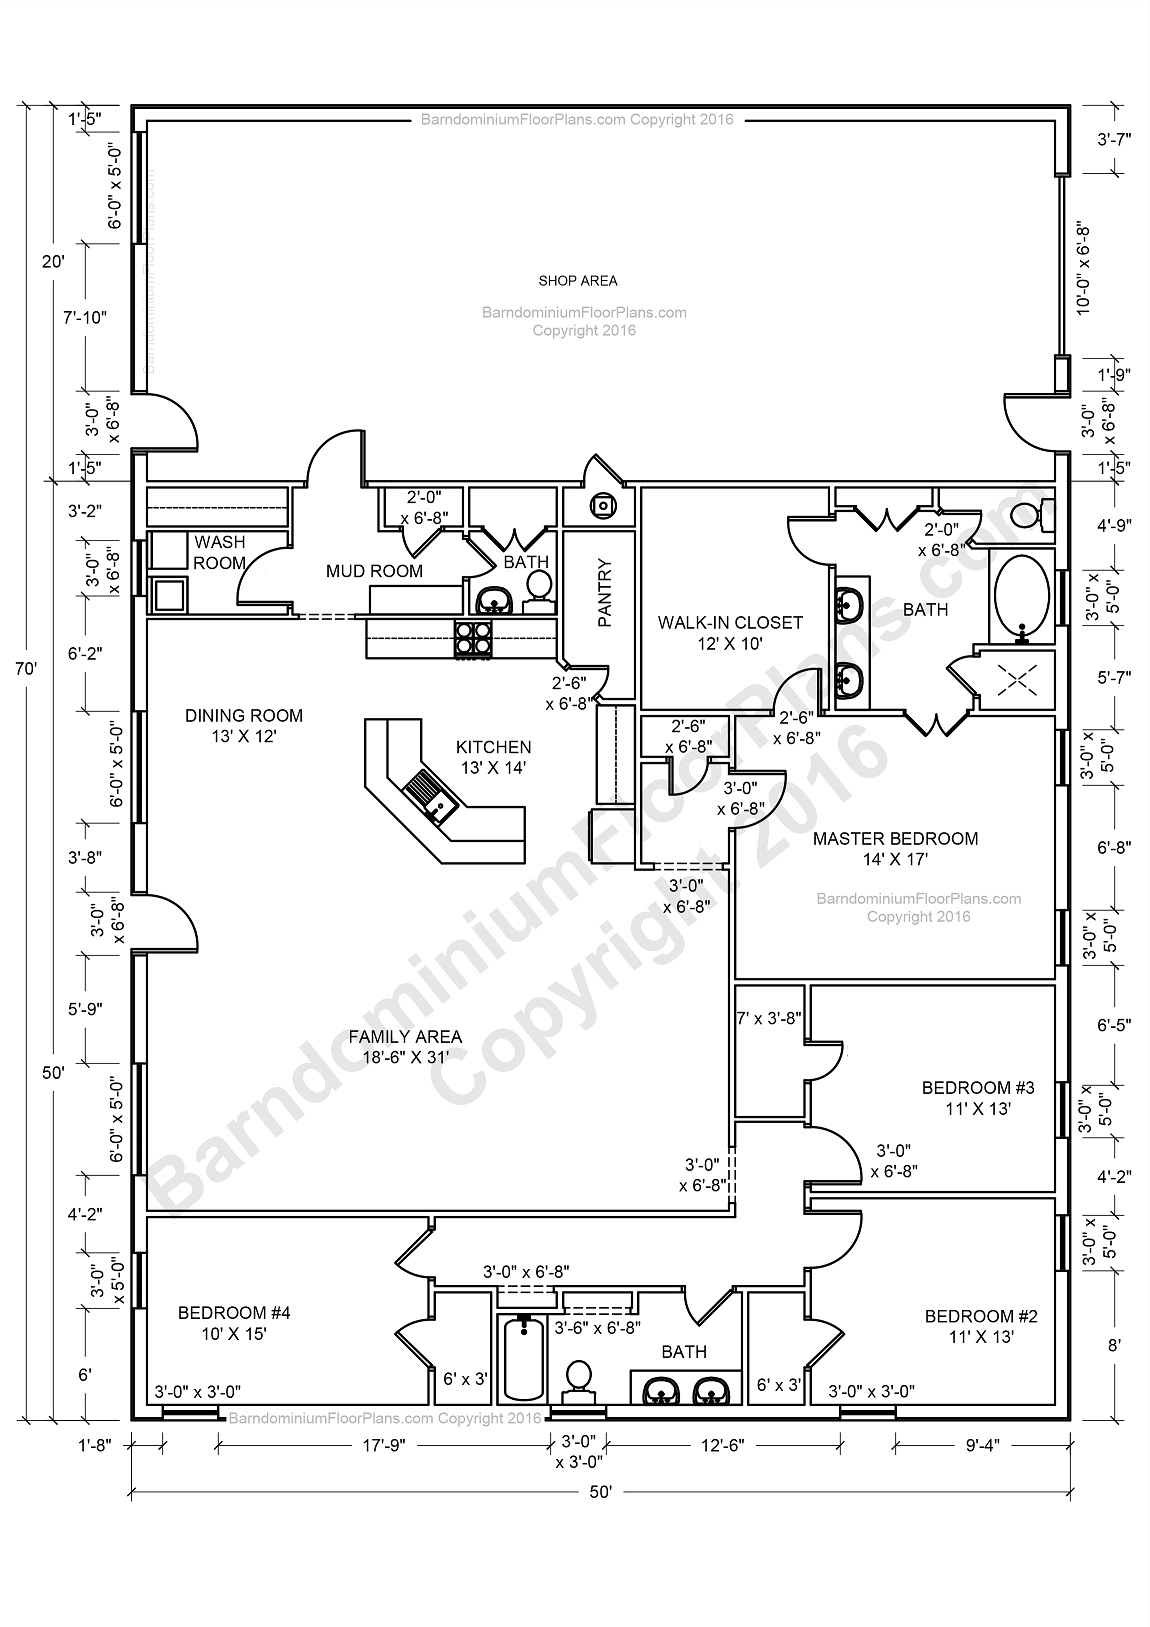 Barndominium floor plans barndominium floor plans 1 800 for House plans with shop attached